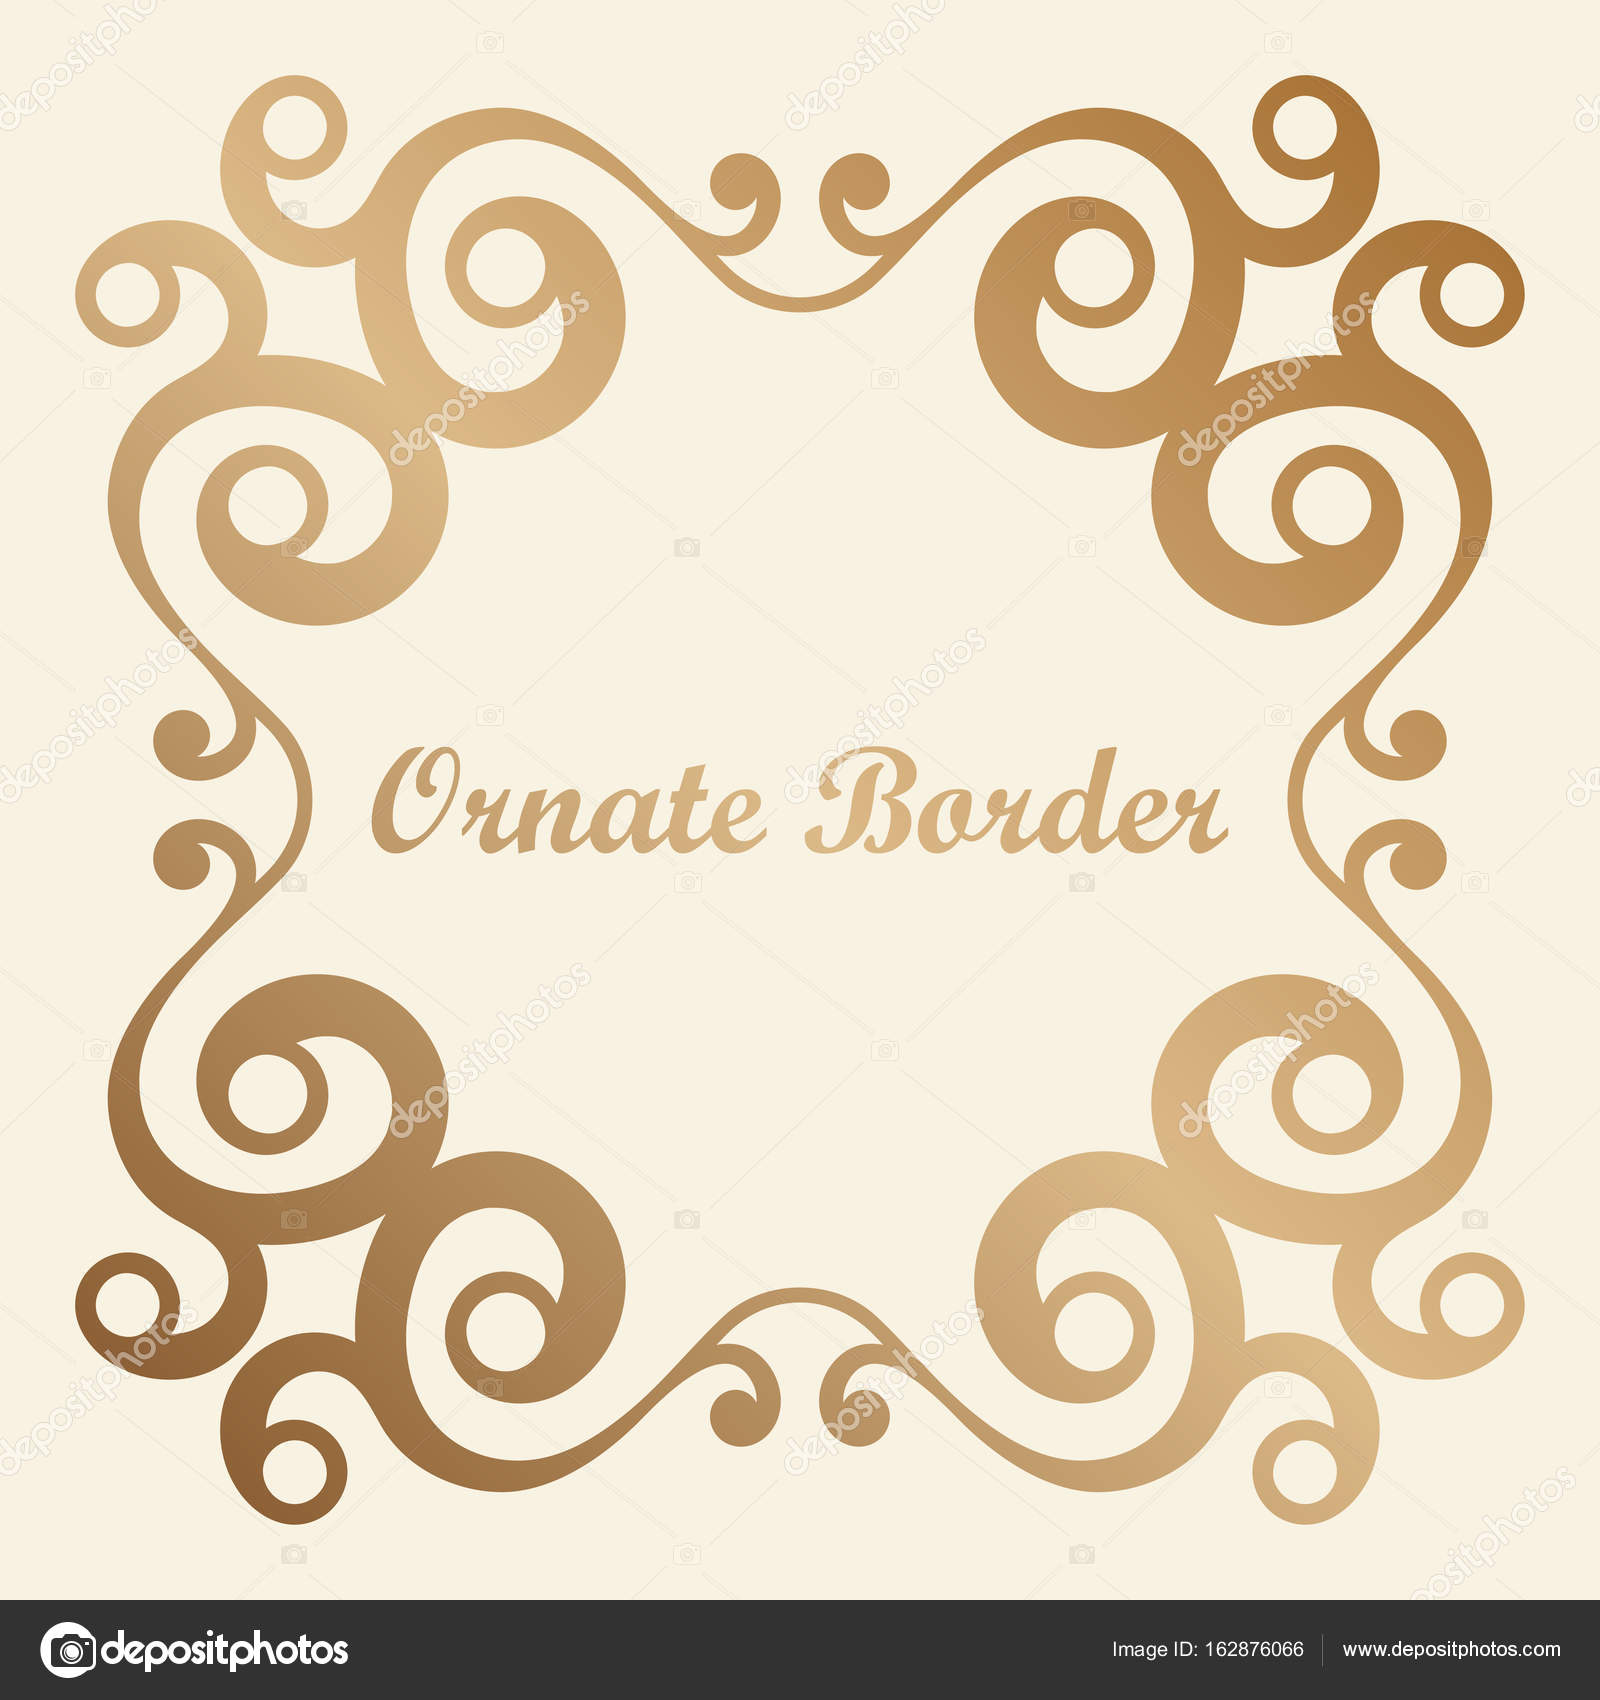 Vector Decorative Element For Design Frame Template With Place Text Fine Floral Border Lace Decor Elegant Art Birthday And Greeting Card